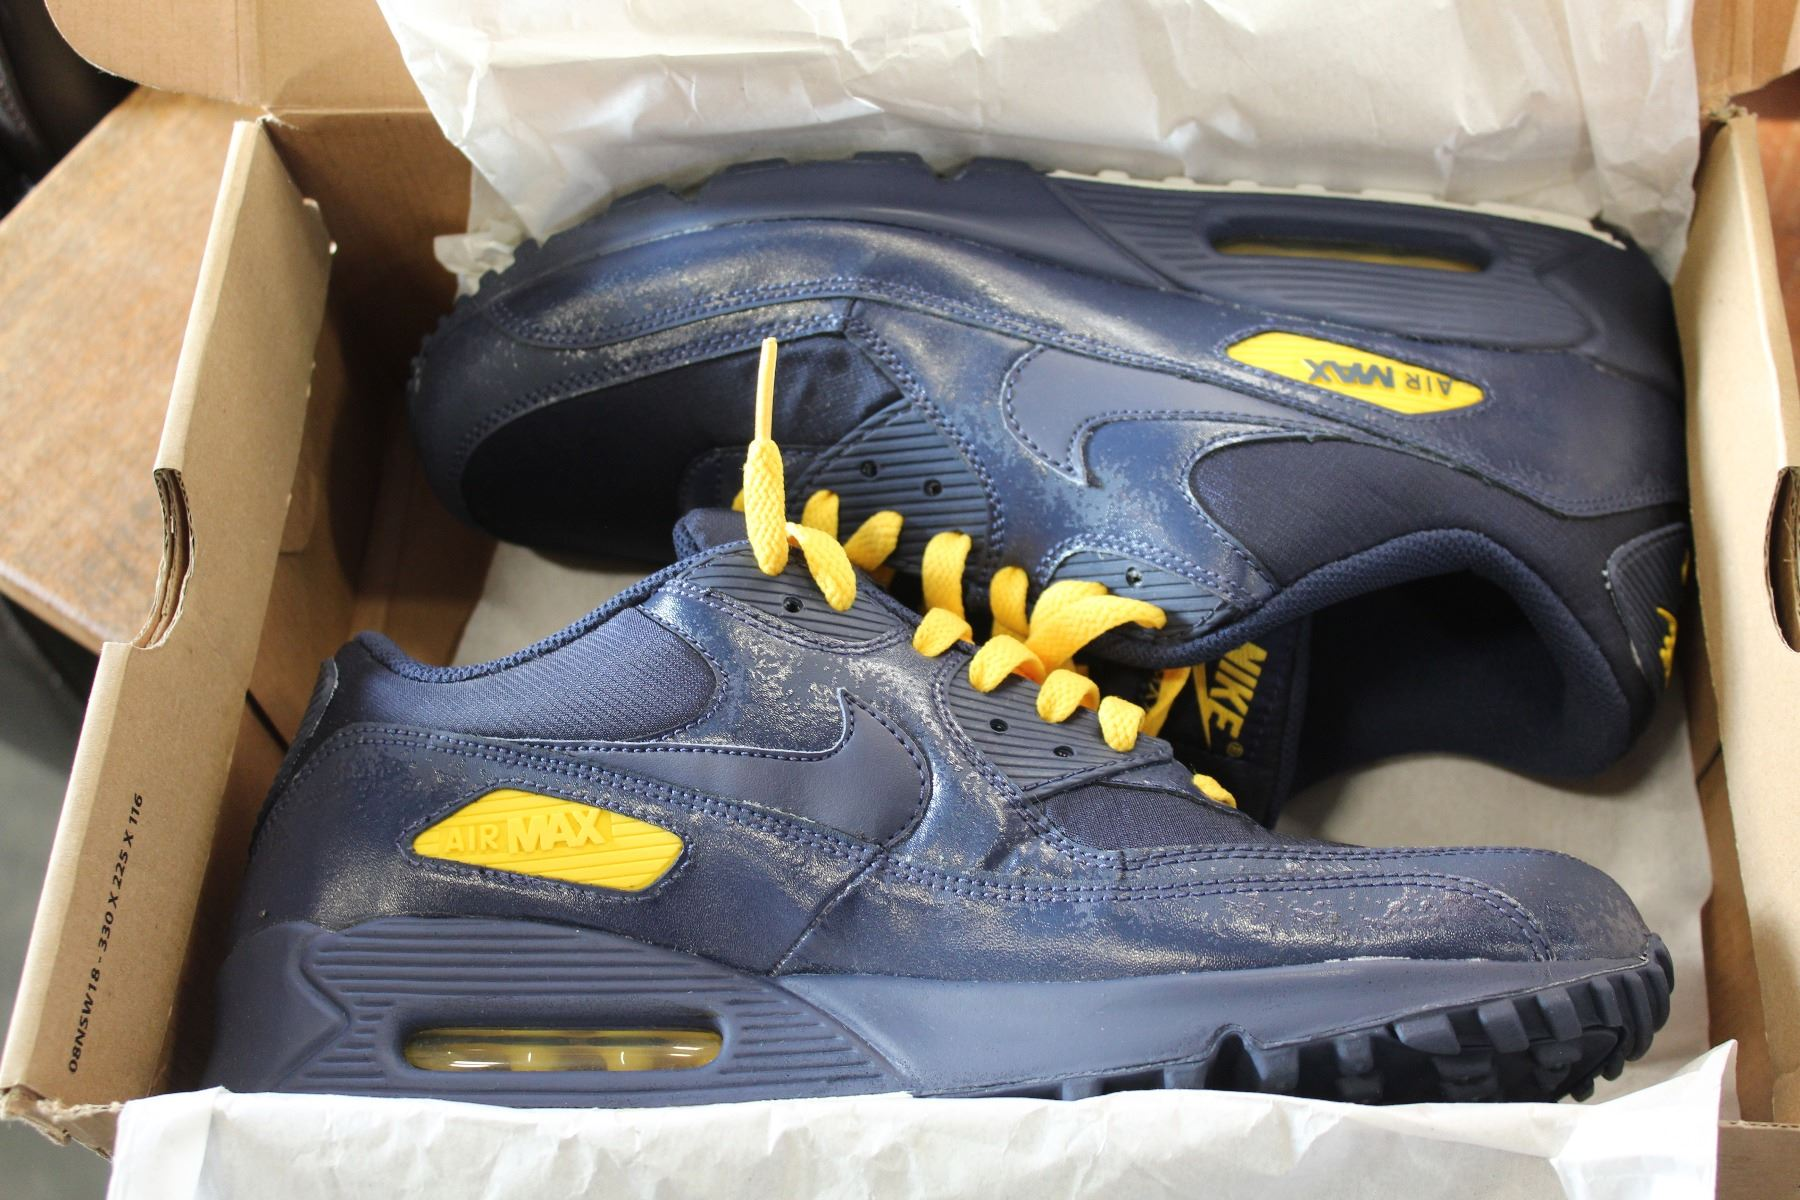 reputable site f6ed7 6acc0 NIKE AIR MAX 90 PREMIUM SIZE 11.5 RUNNERS